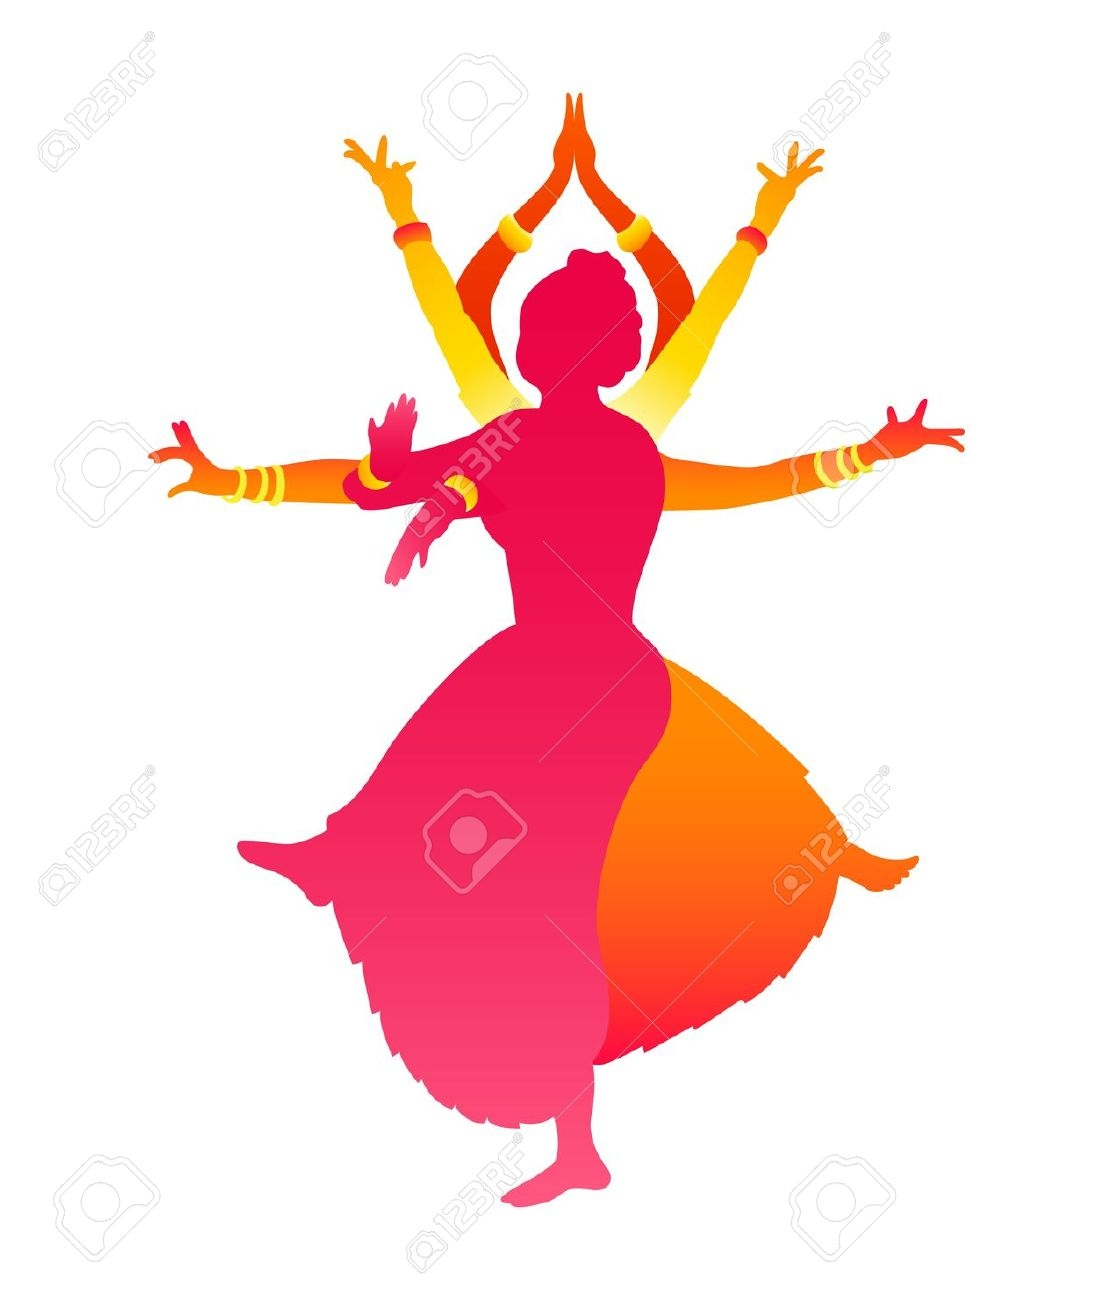 Dance Art Png - Free Dance Clipart Png, Download Free Clip Art, Free Clip Art on ...